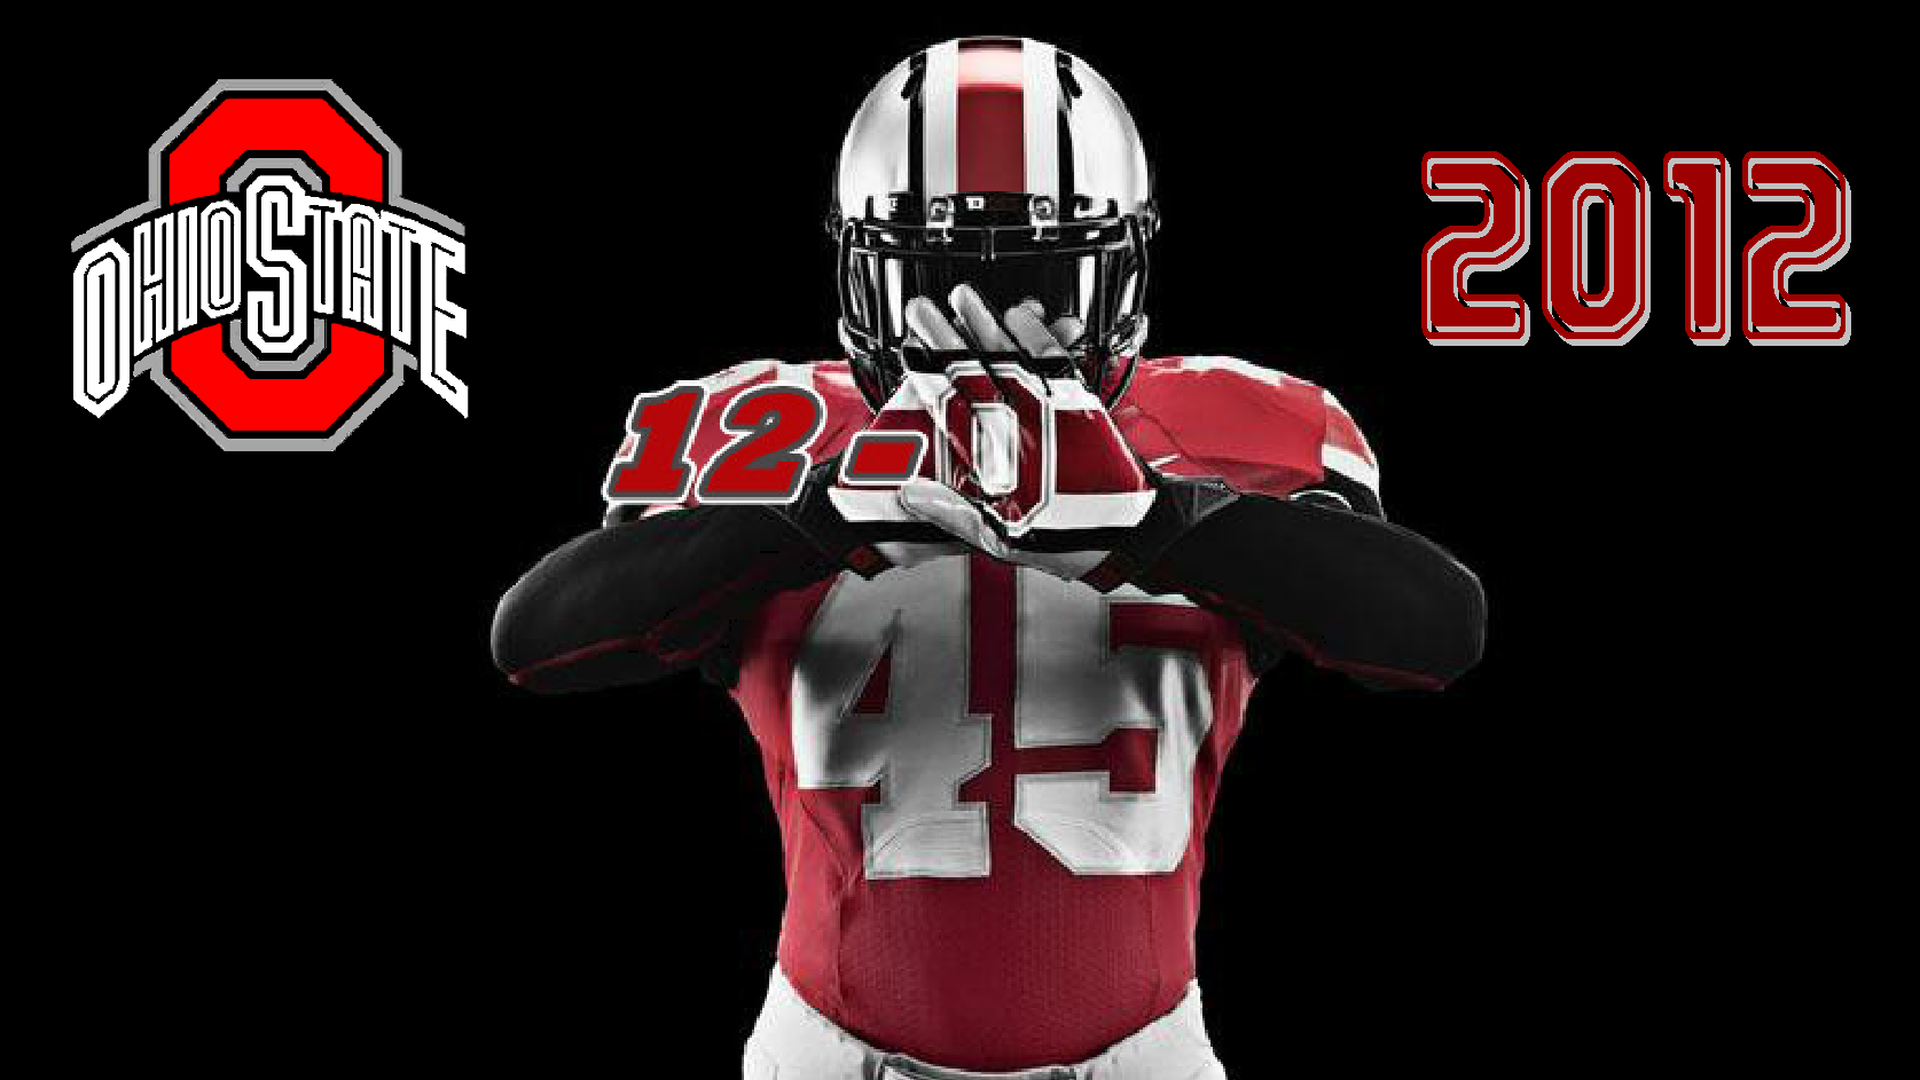 The 2002 Ohio State Buckeyes football team was the national champion of the 2002 NCAA Division IA football season The team was the first in Division IA now